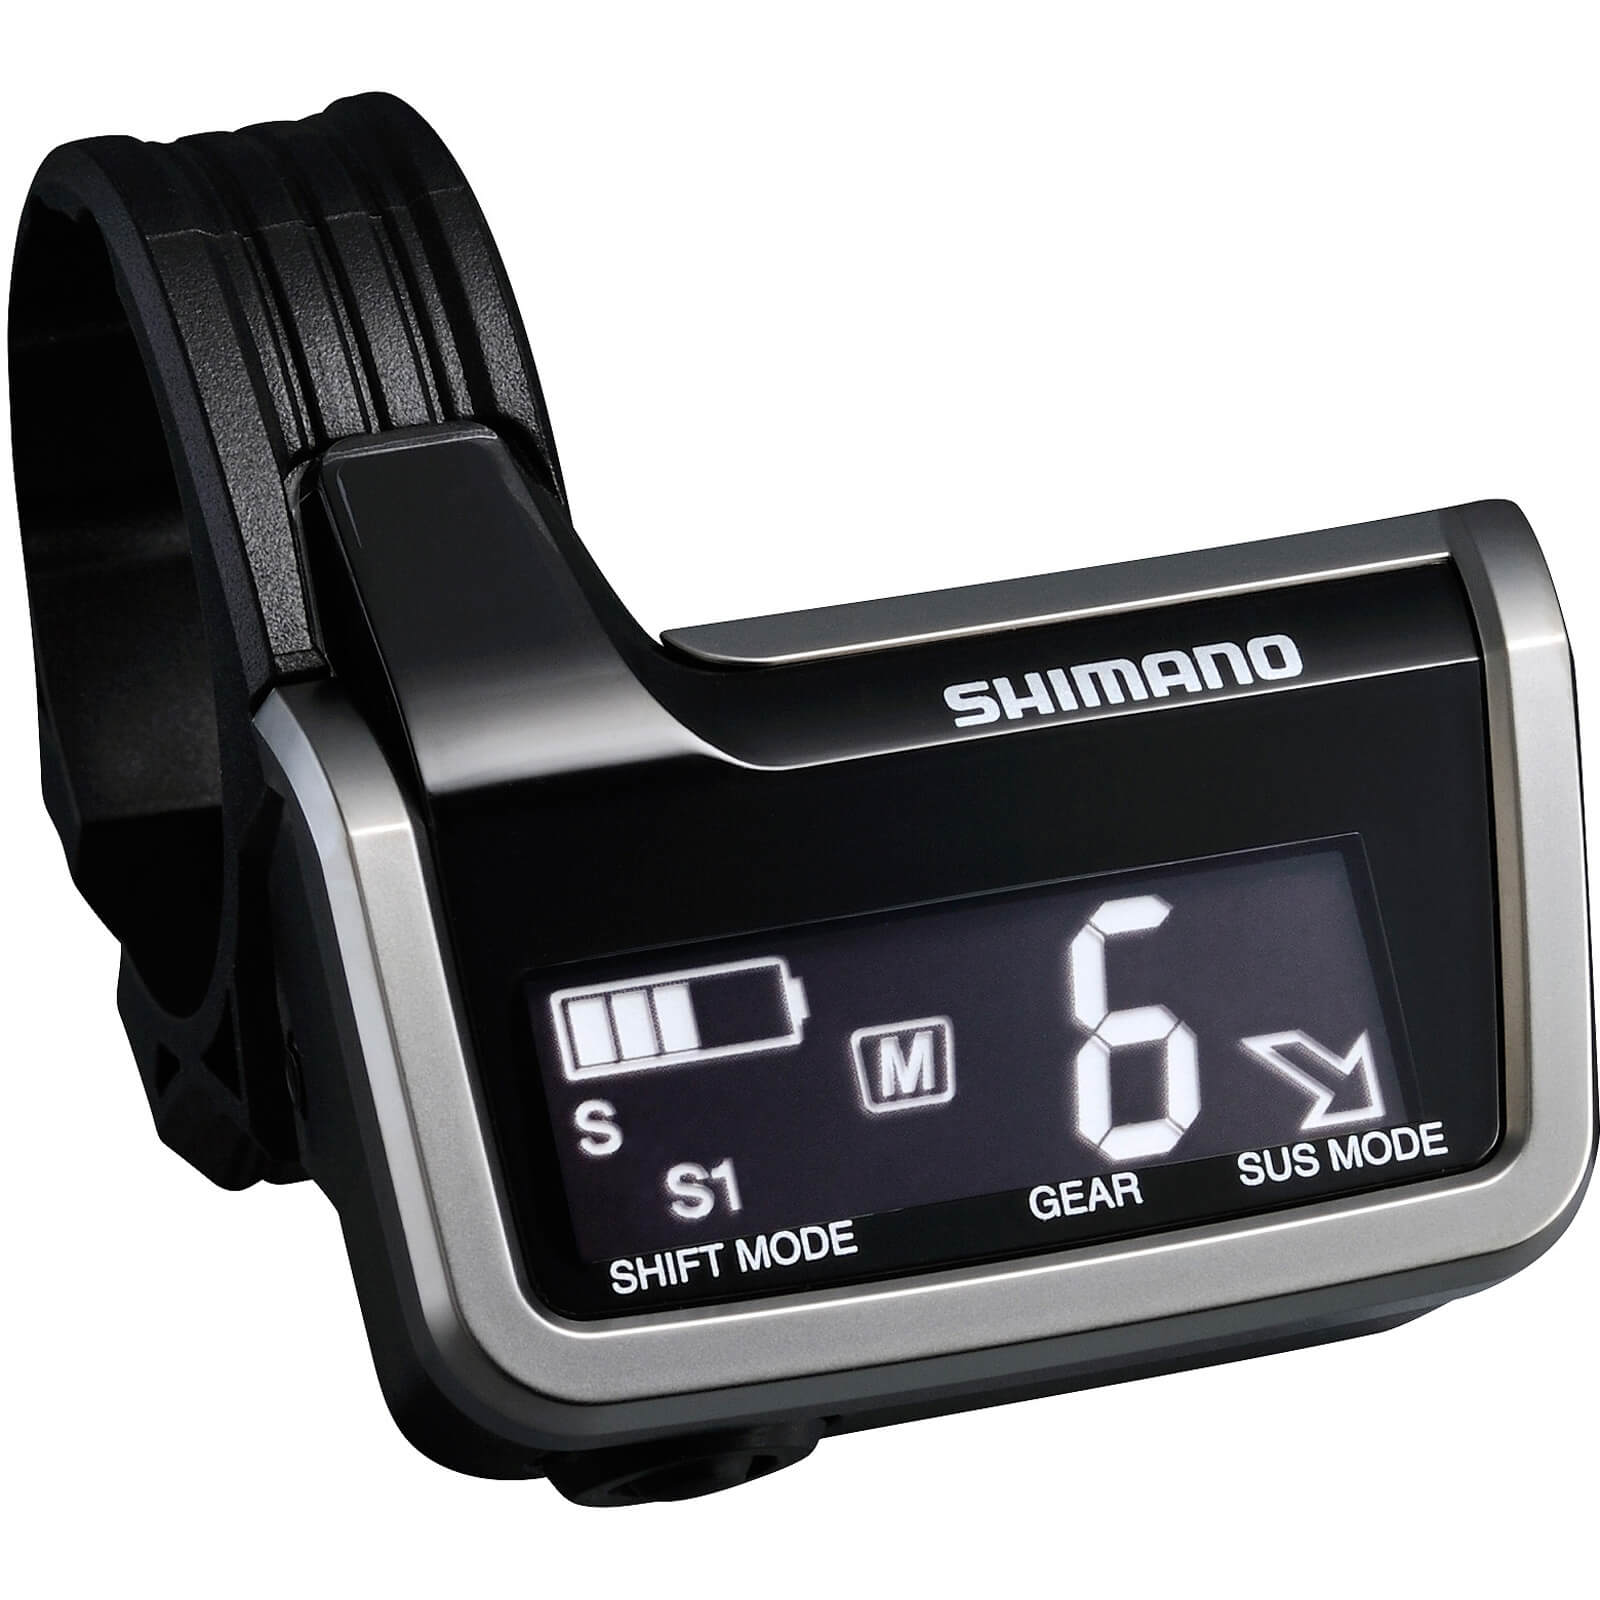 Shimano SC-M9051 Di2 System Information and Display Junction A - 3x E-Tube Ports